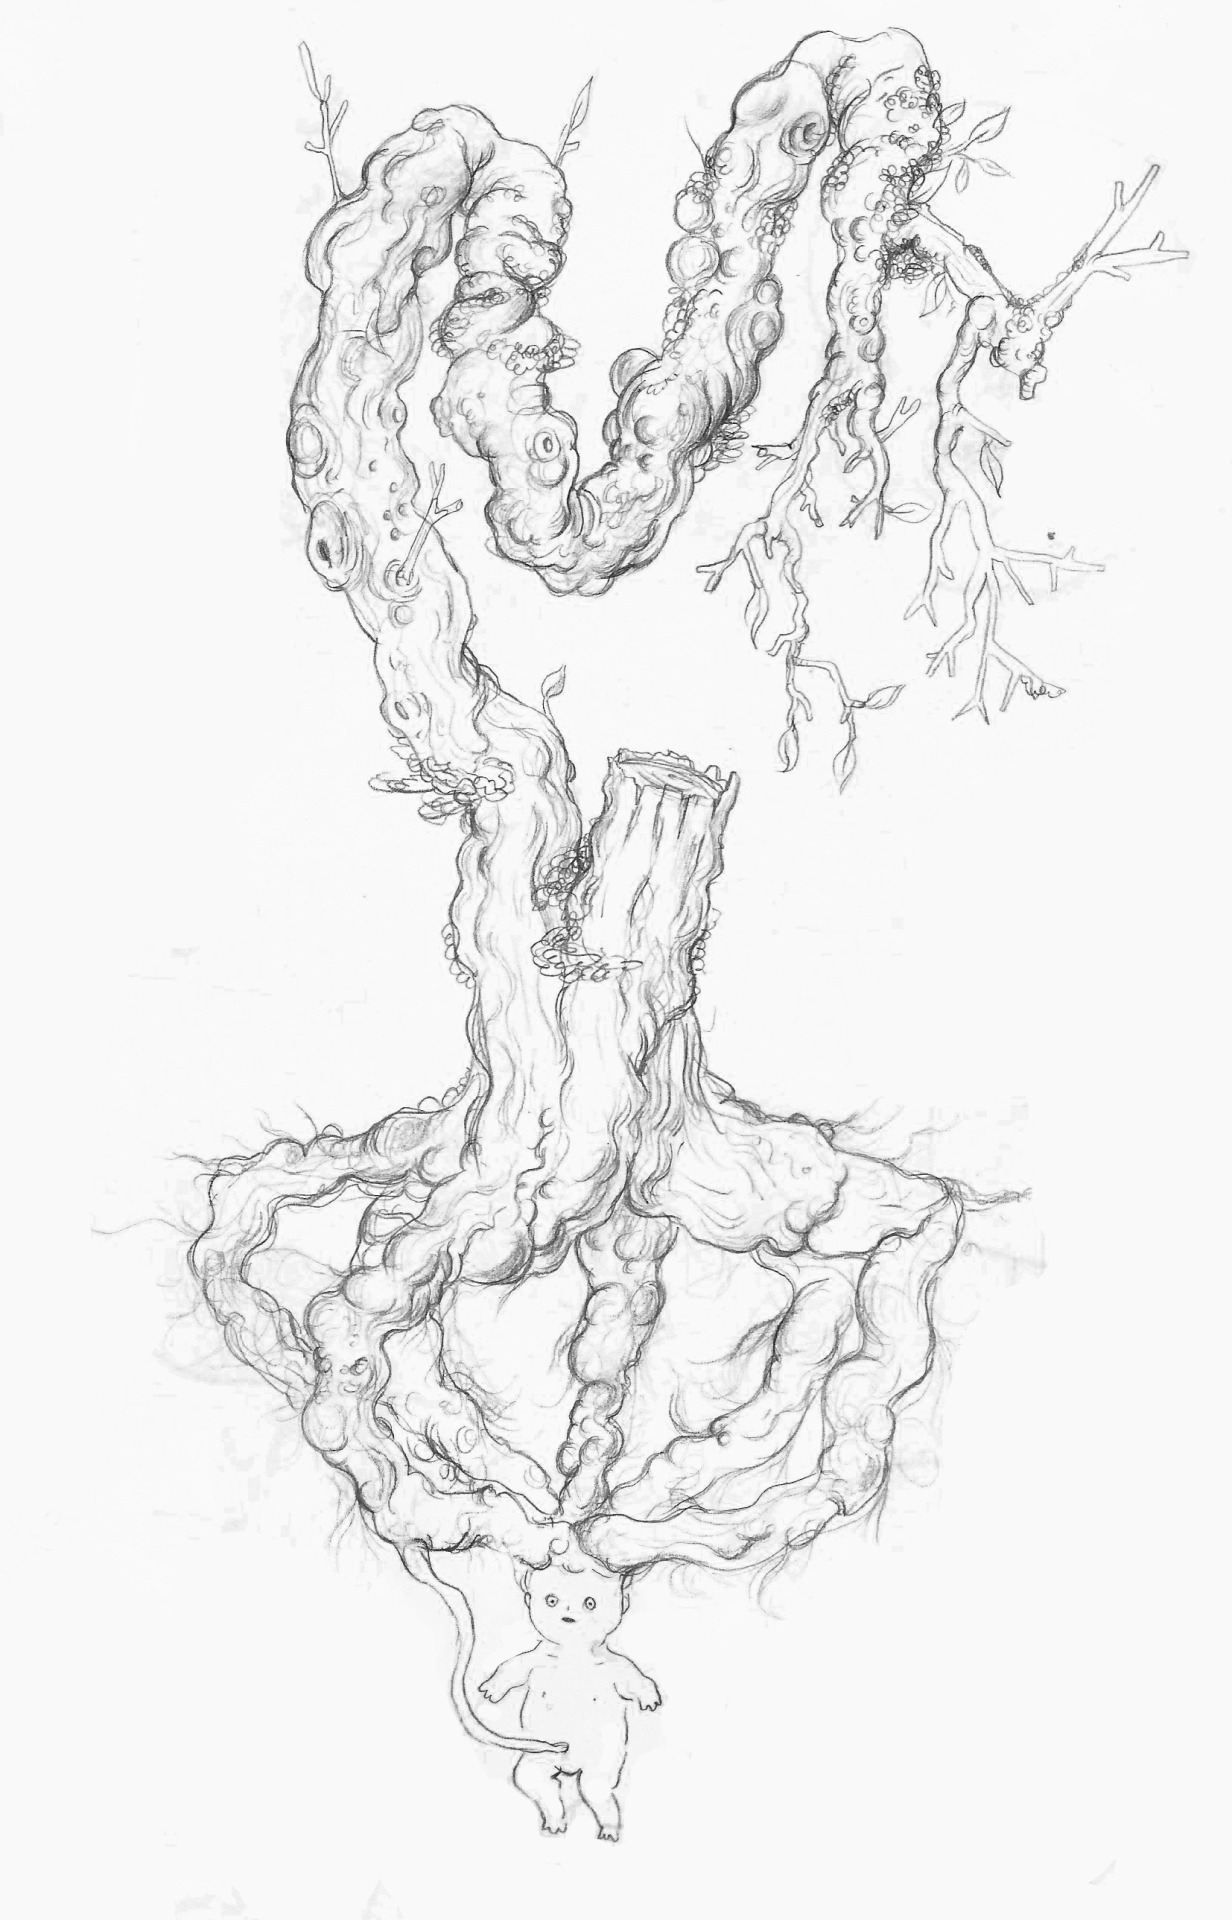 Oh, the things I draw at work D: I guess it's a monster tree controlled by a fetus??? idk it's up to you